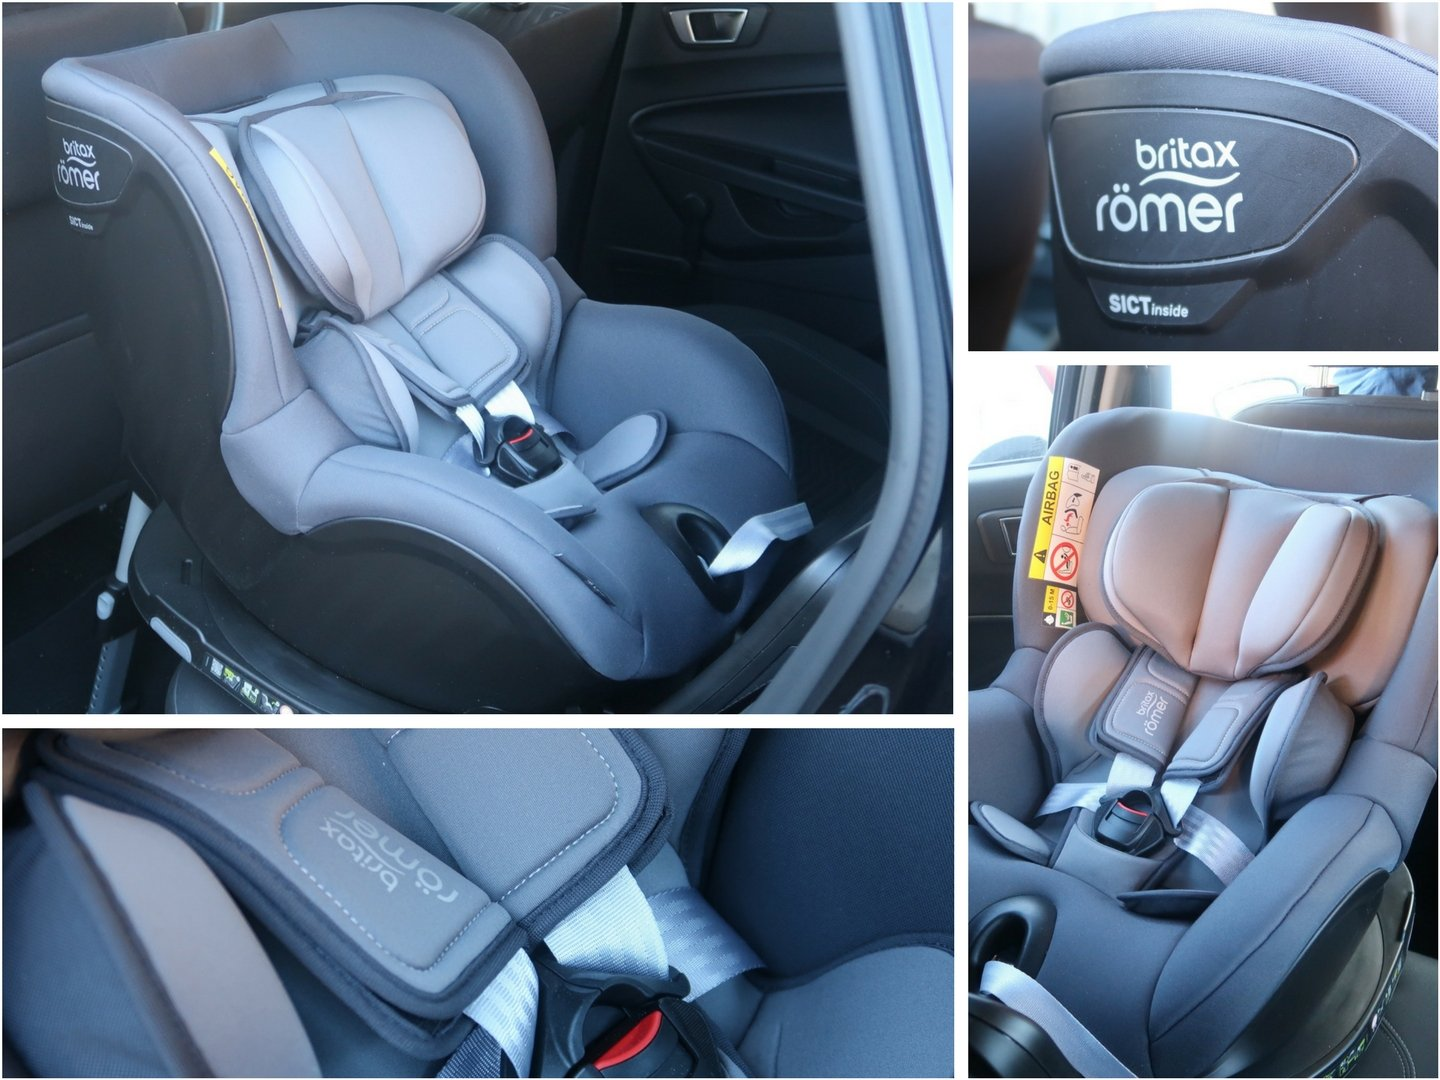 Britax Römer Dualfix i-Size infant and toddler car seat - a first impressions review